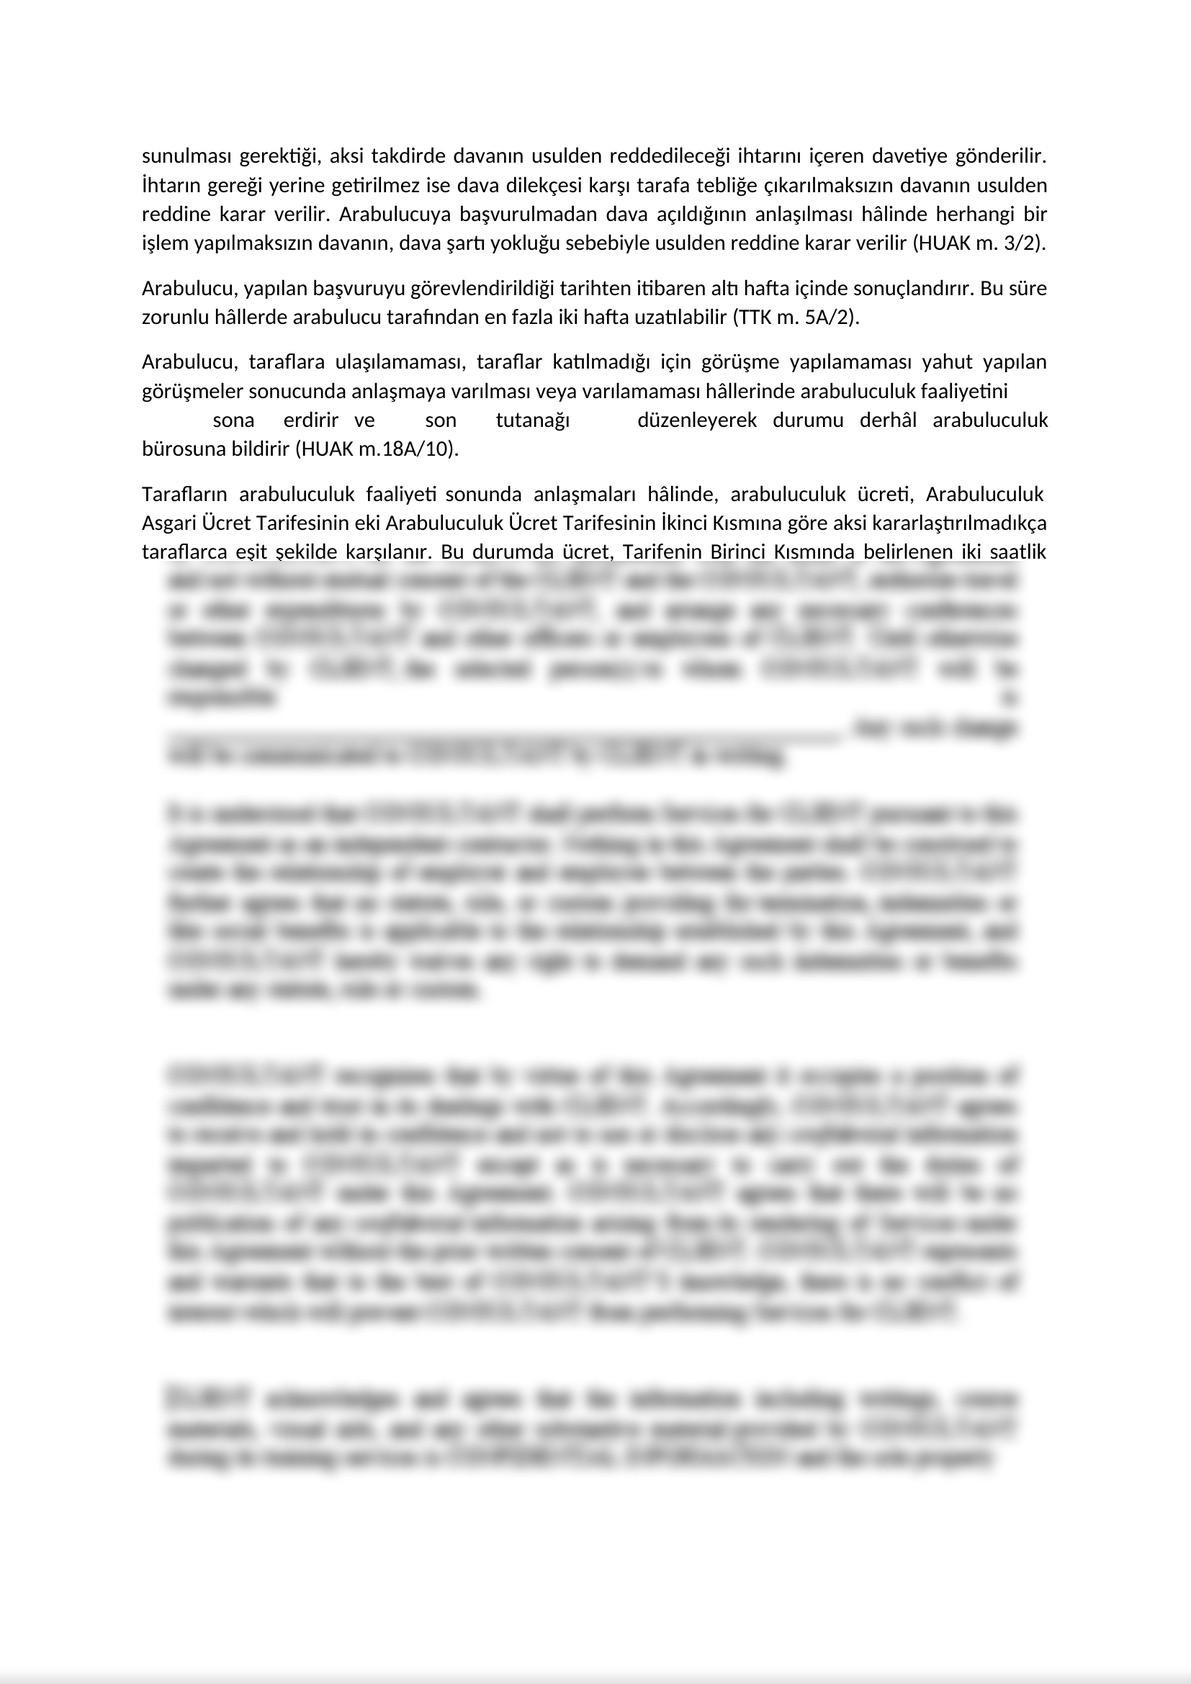 Invitatition Letter to Parties of Mandatory Mediation on Commercial Disputes - Turkish -1